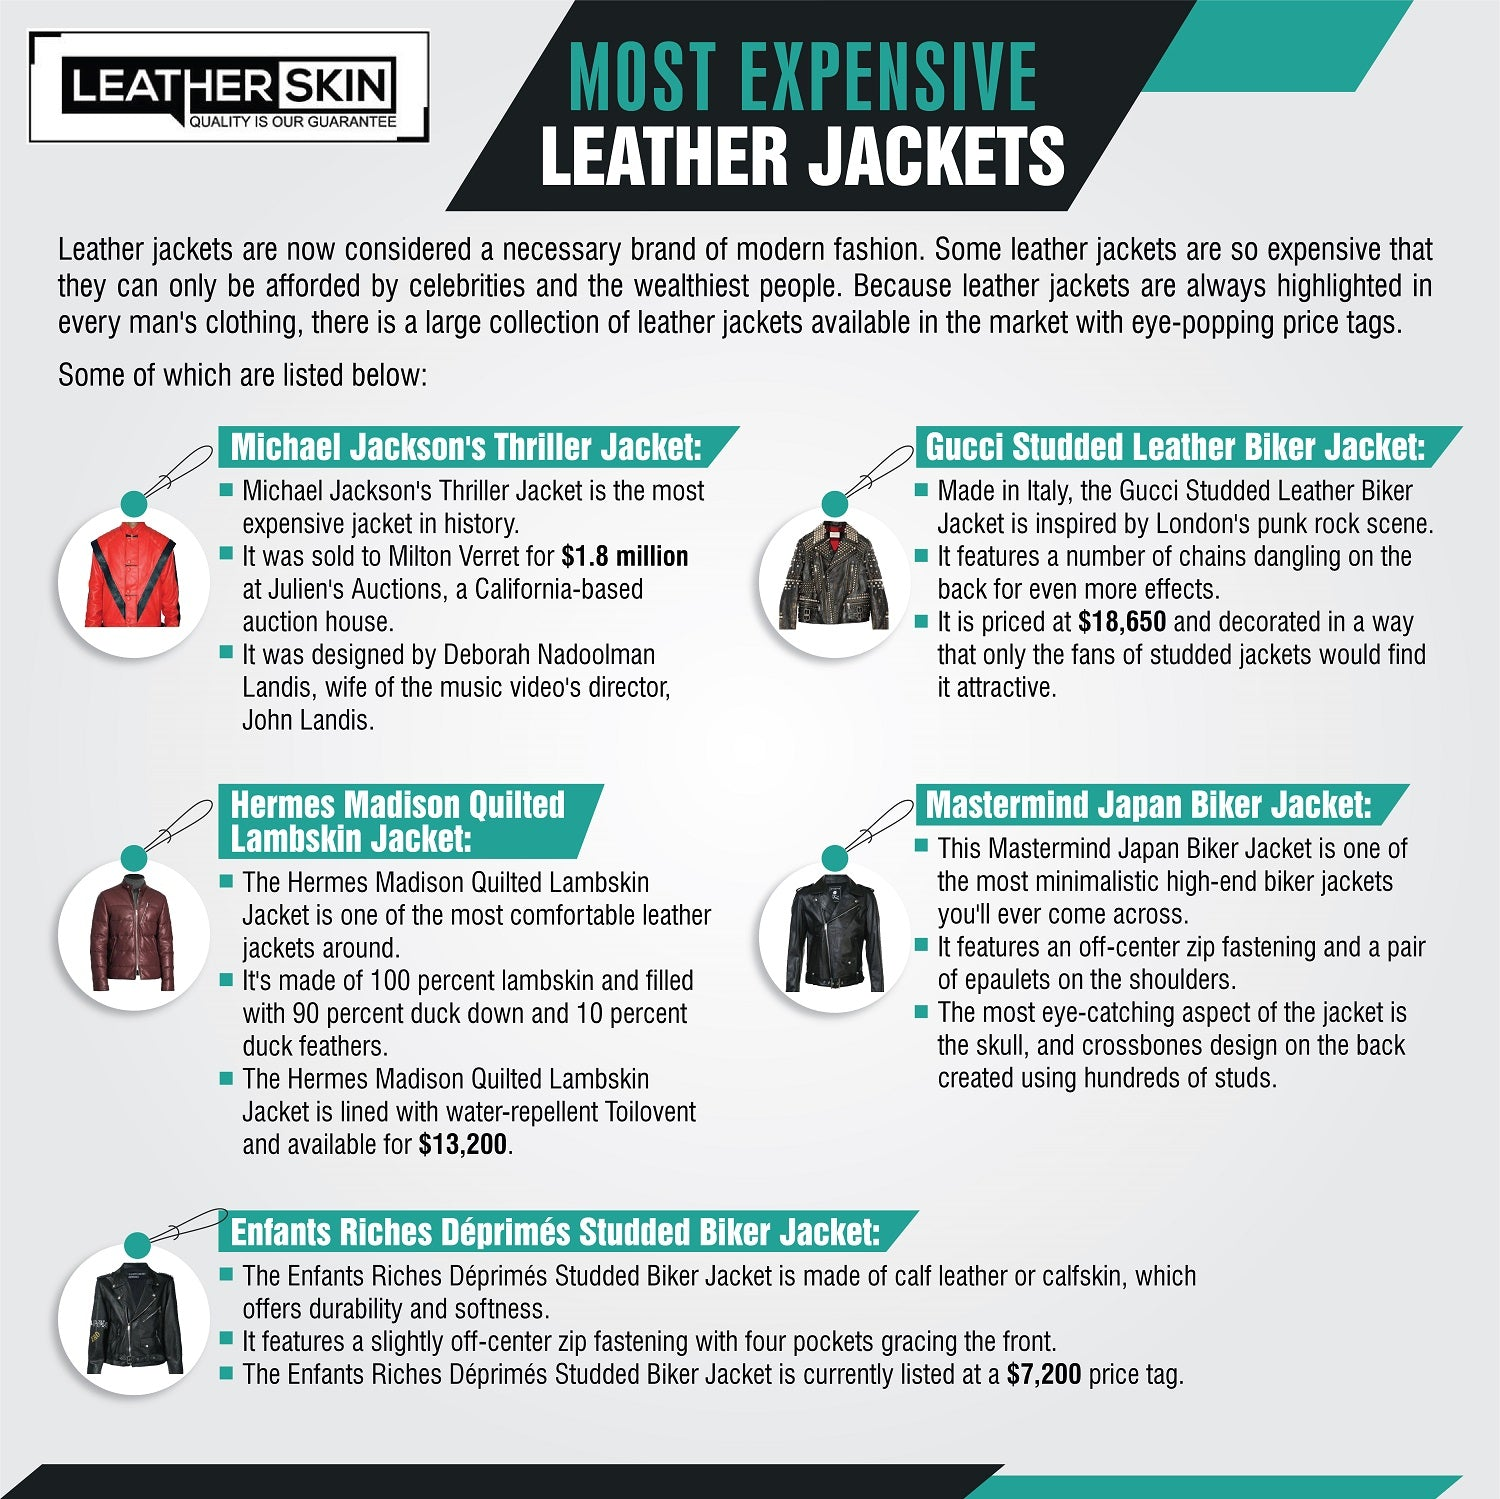 Infographic Most Expensive Leather Jacket